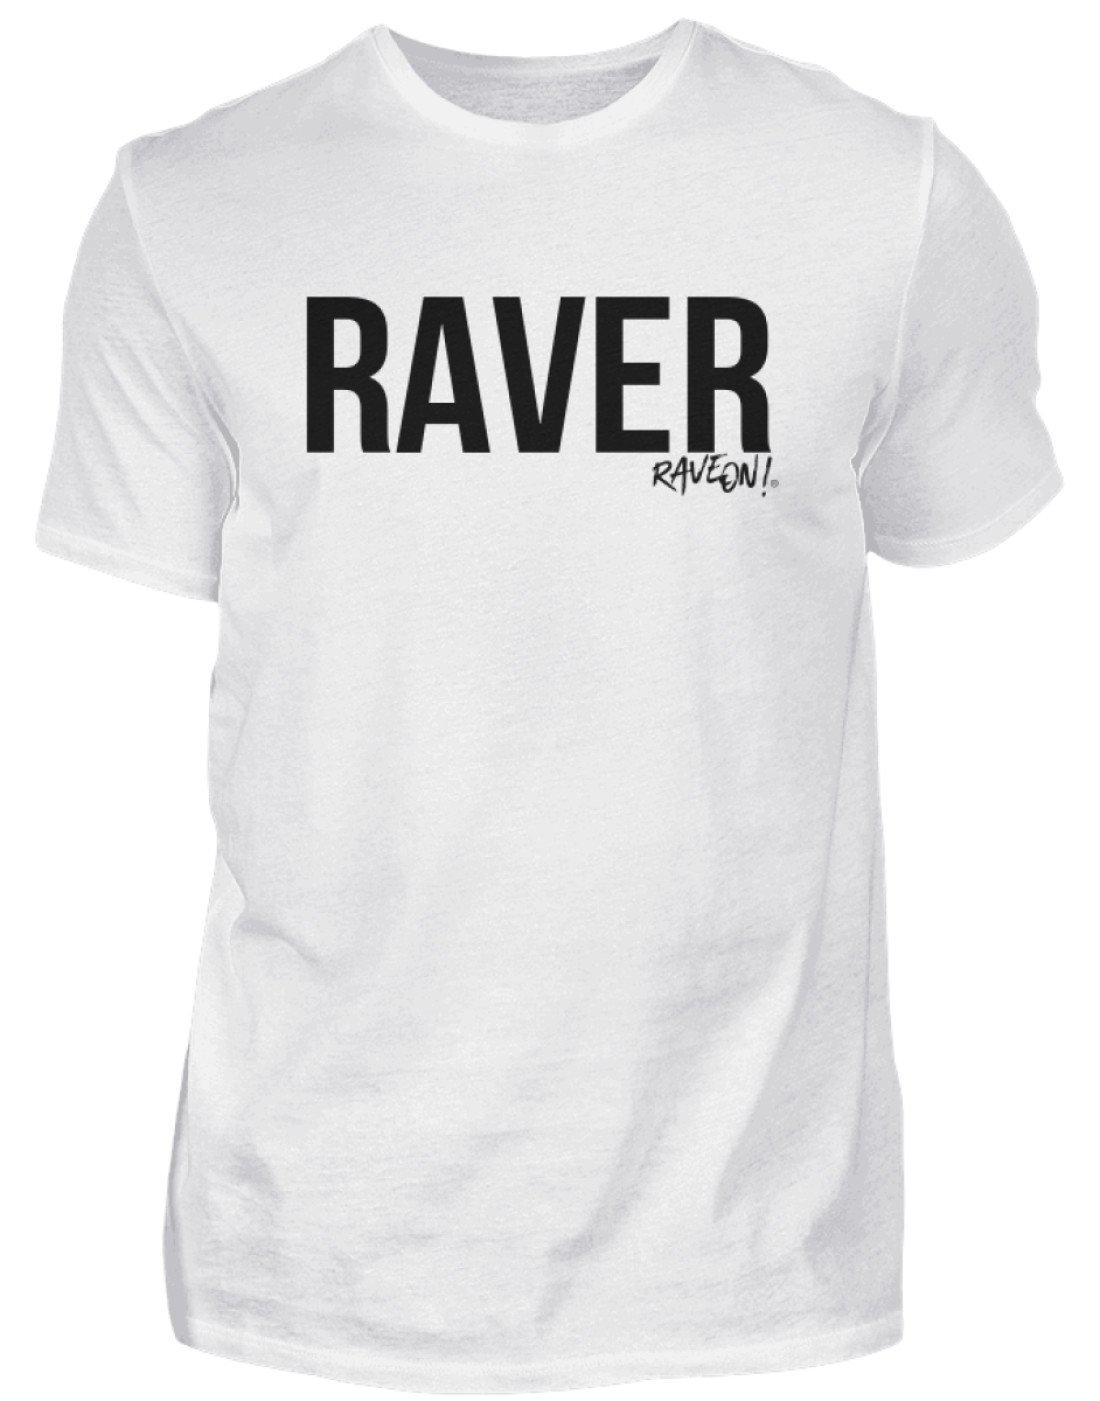 "Stylisches ""Raver"" Shirt Herren Basic T-Shirt Weiß / S - Rave On!® der Club & Techno Szene Shop für Coole Junge Mode Streetwear Style & Fashion Outfits + Sexy Festival 420 Stuff"